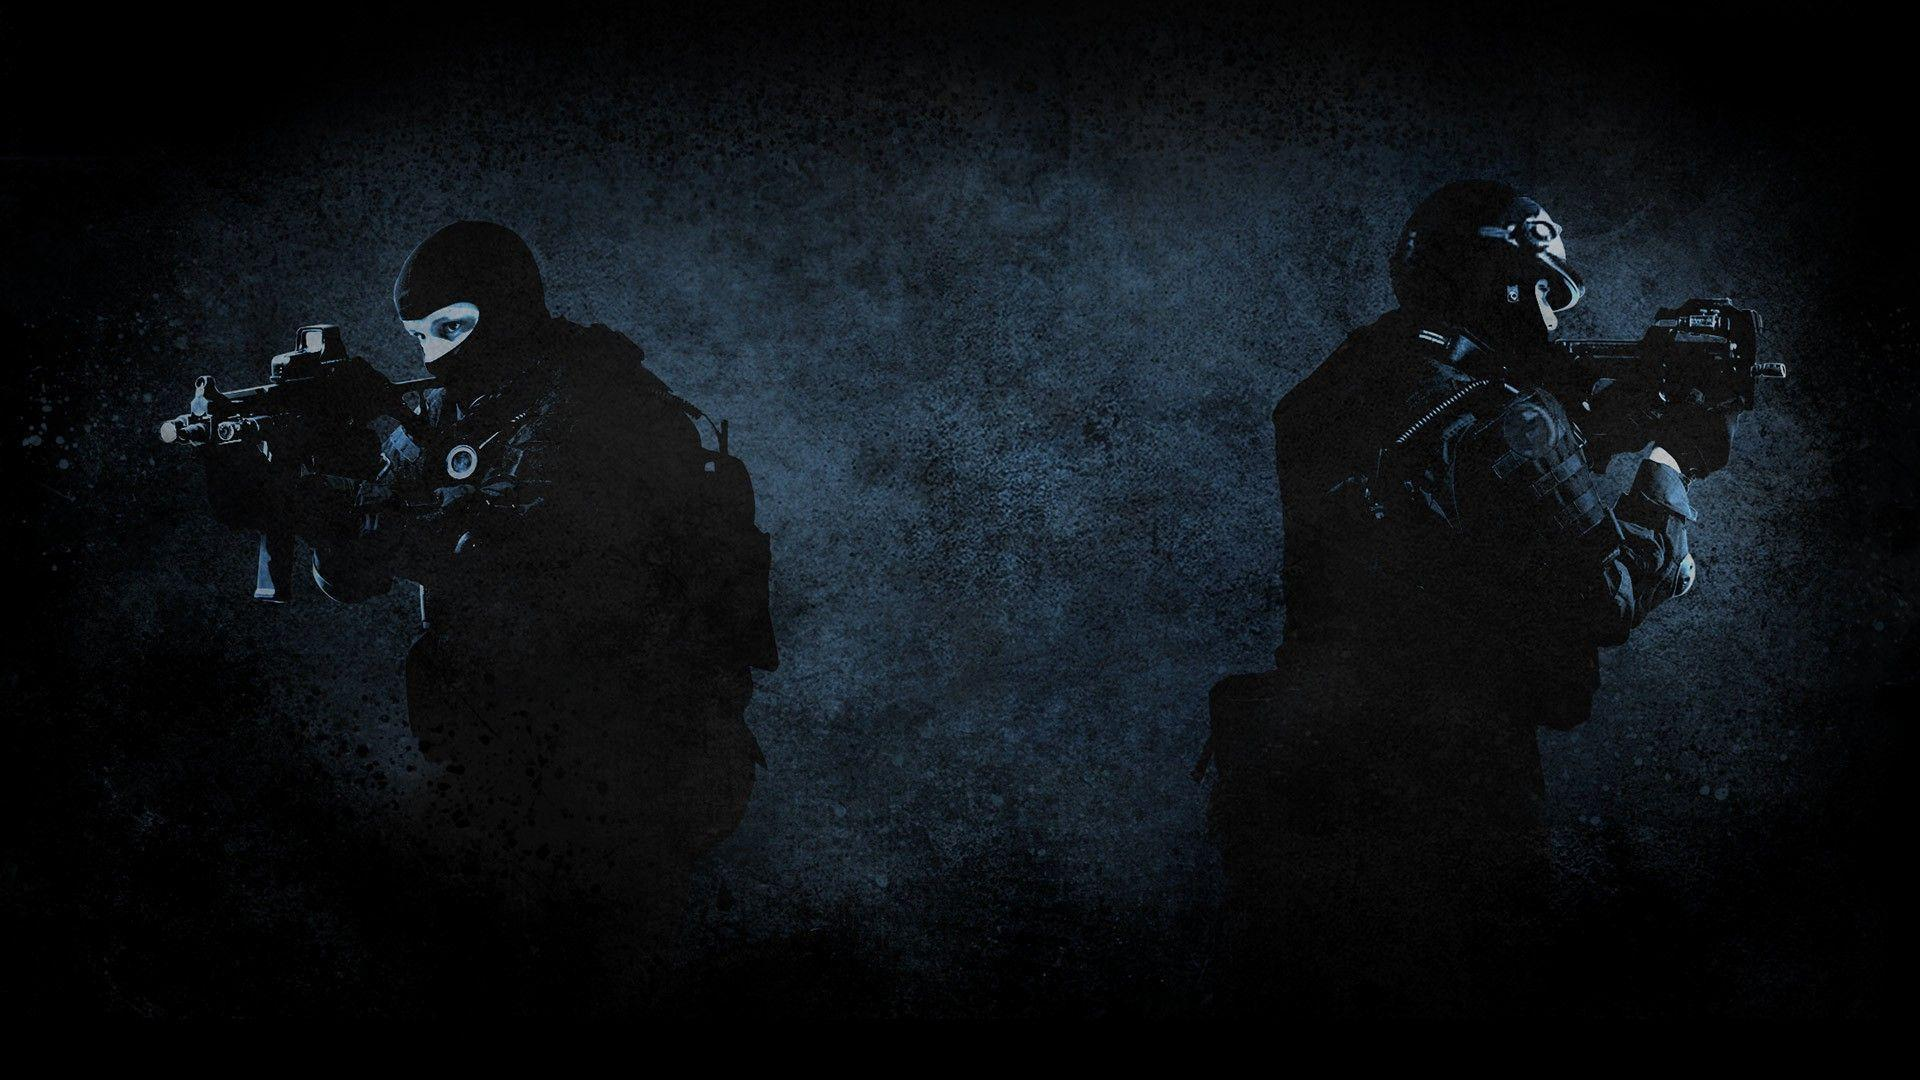 70+] Counter Strike Wallpapers on WallpaperSafari